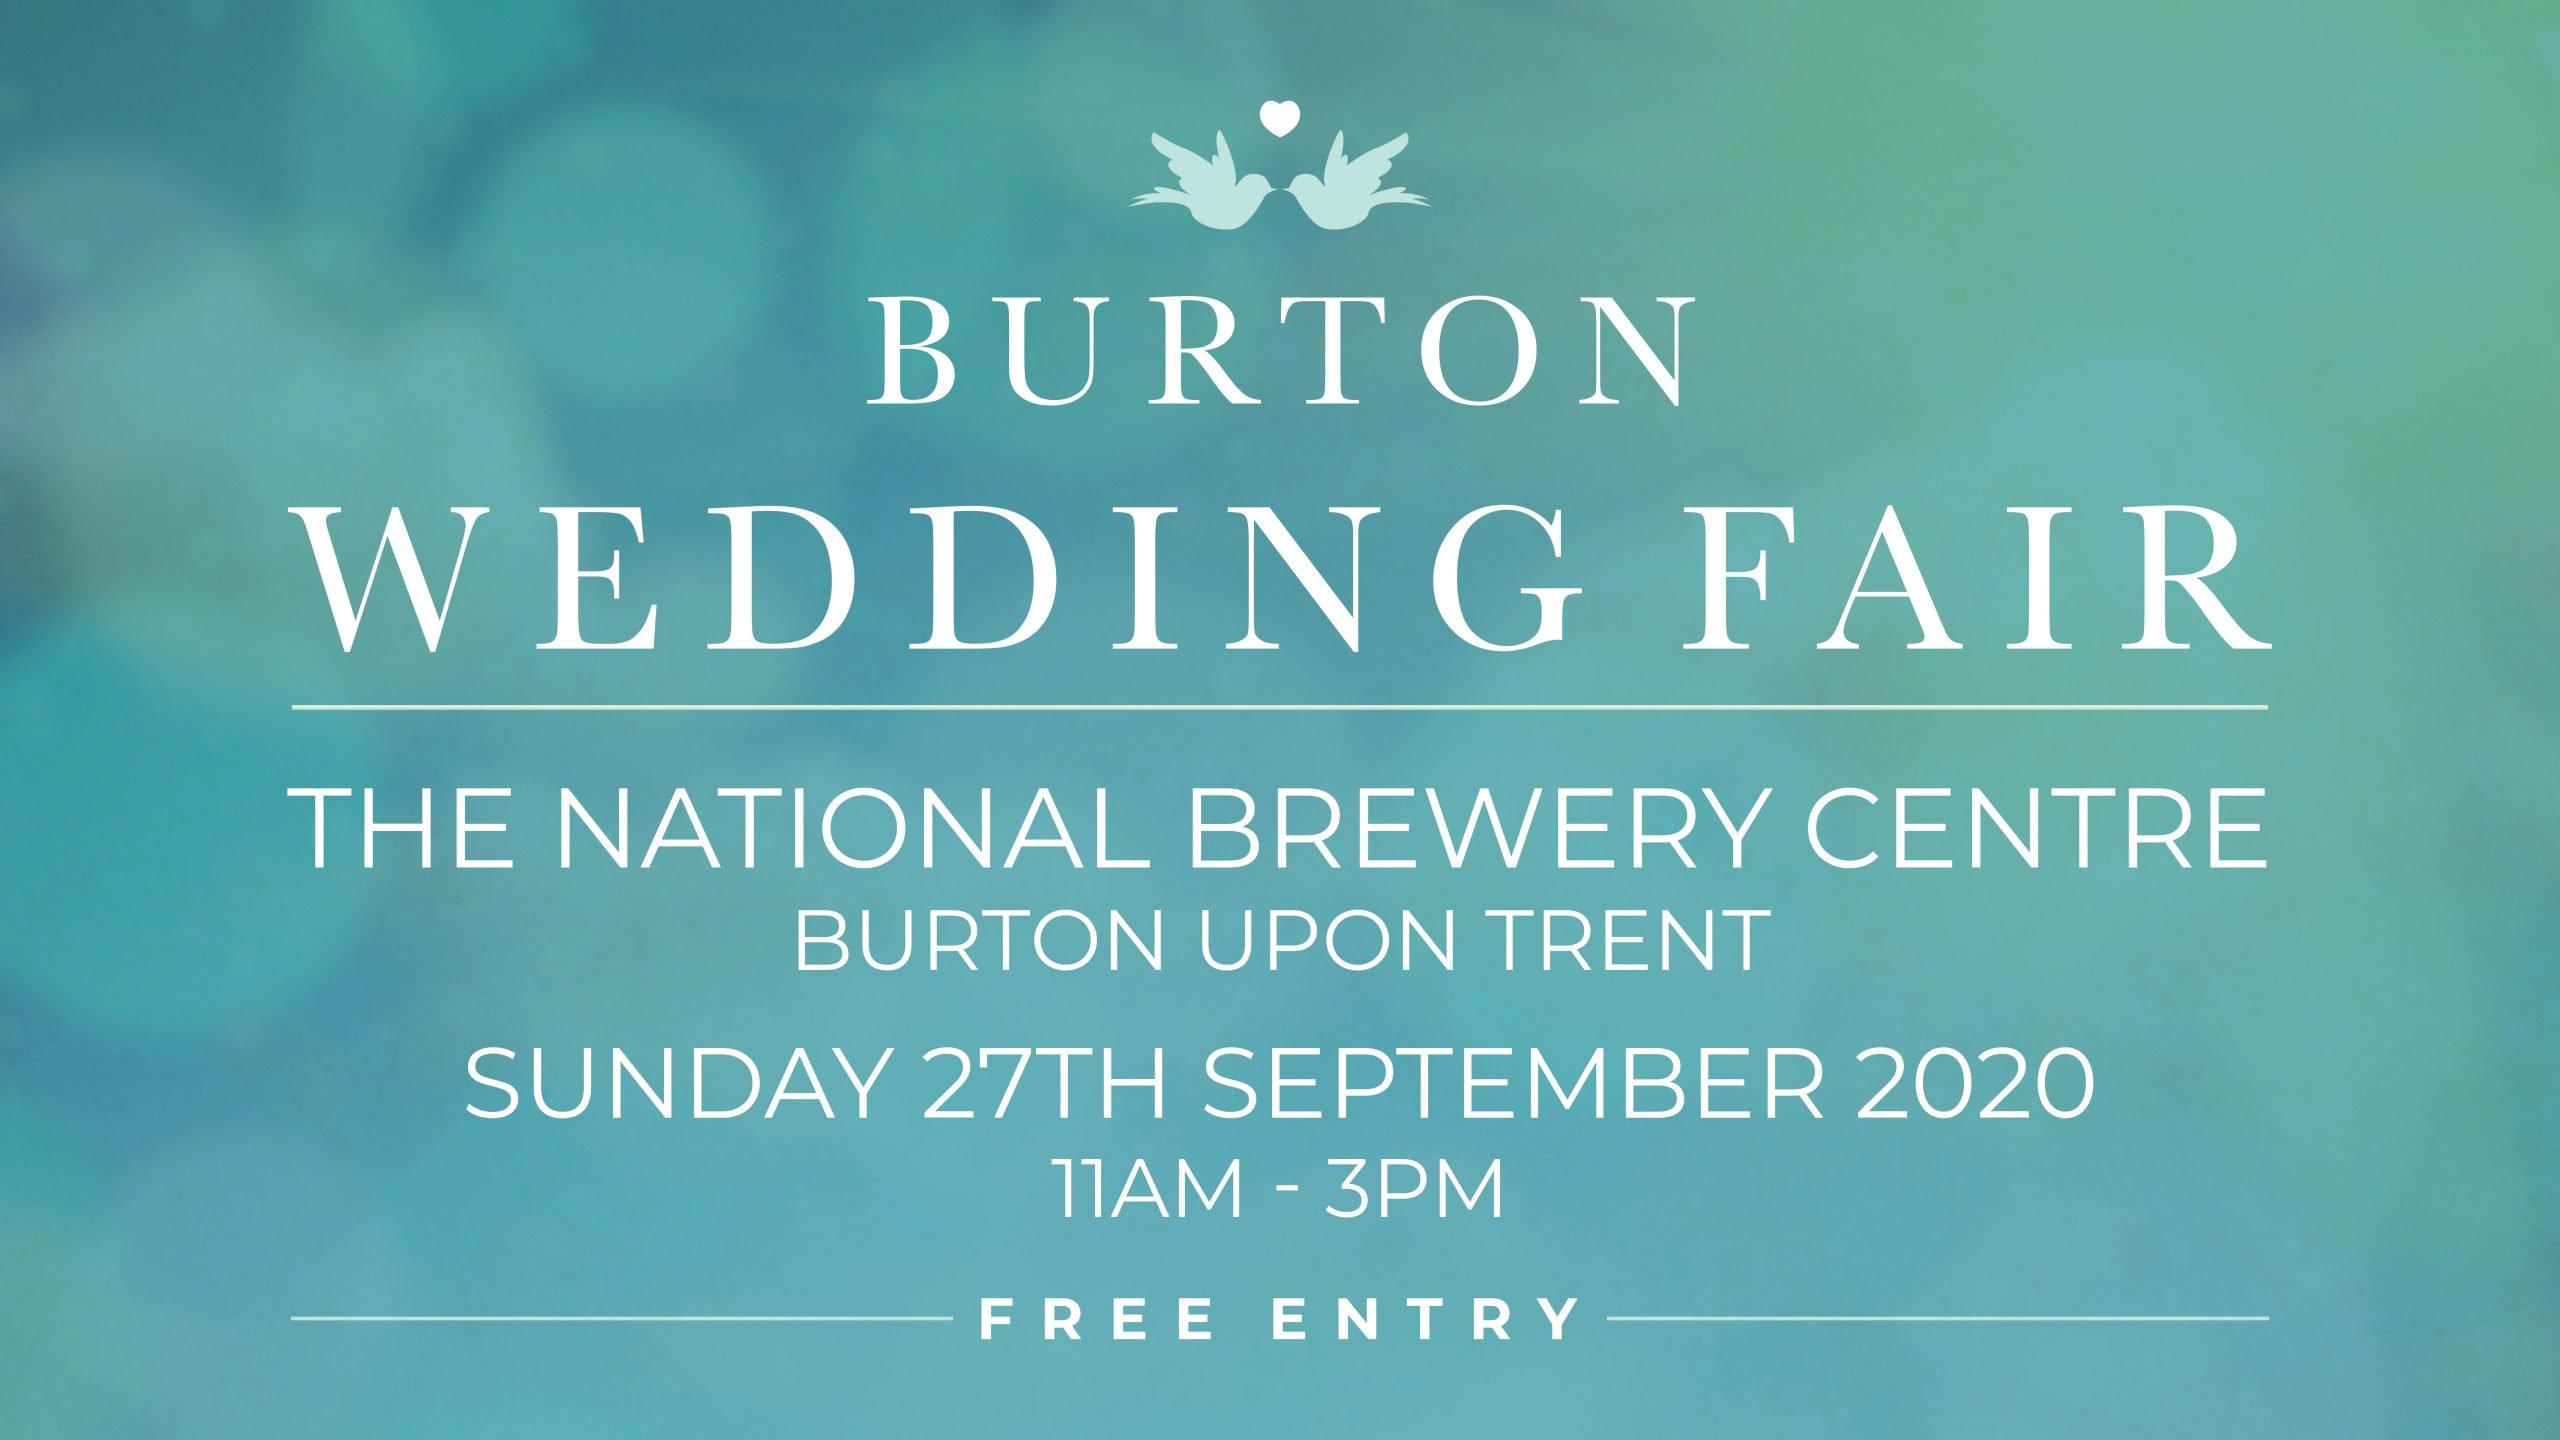 Brewery Centre Wedding Fair